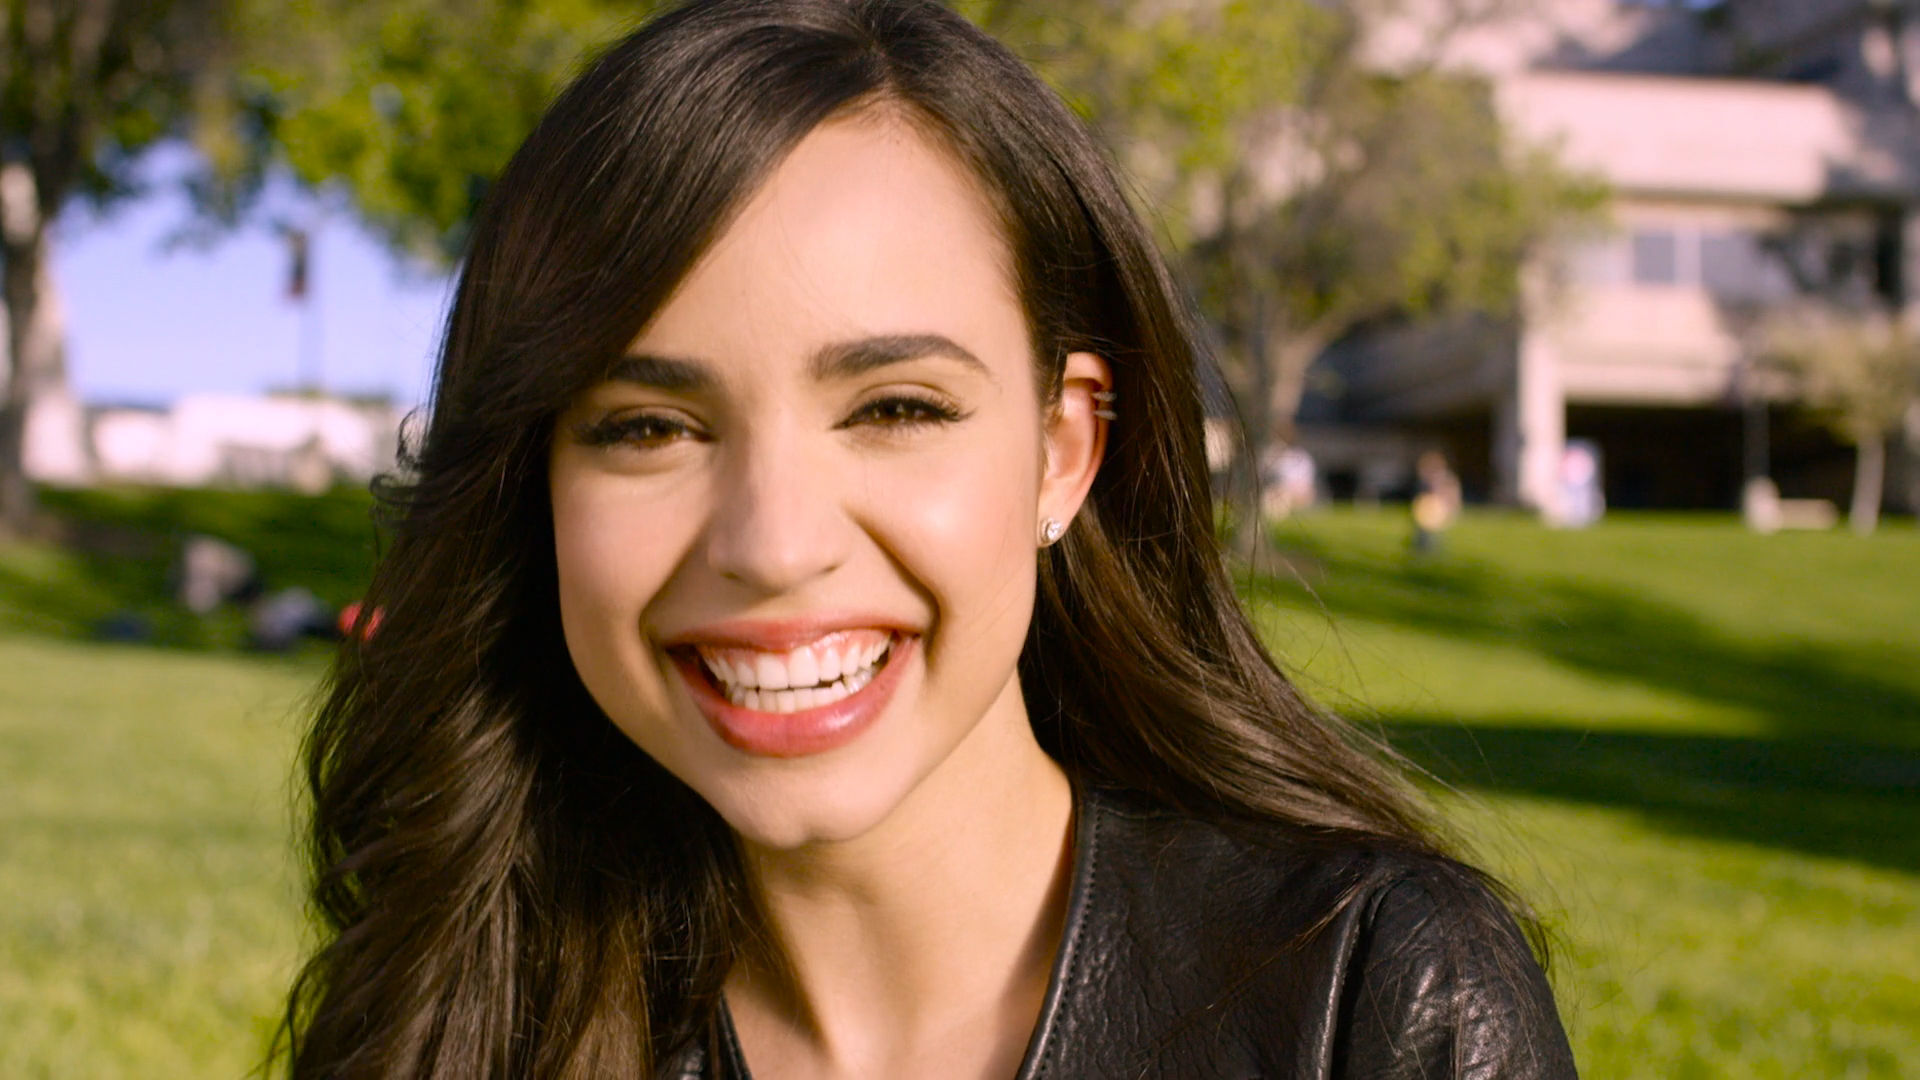 Sofia Carson on Family and School | Being Sofia